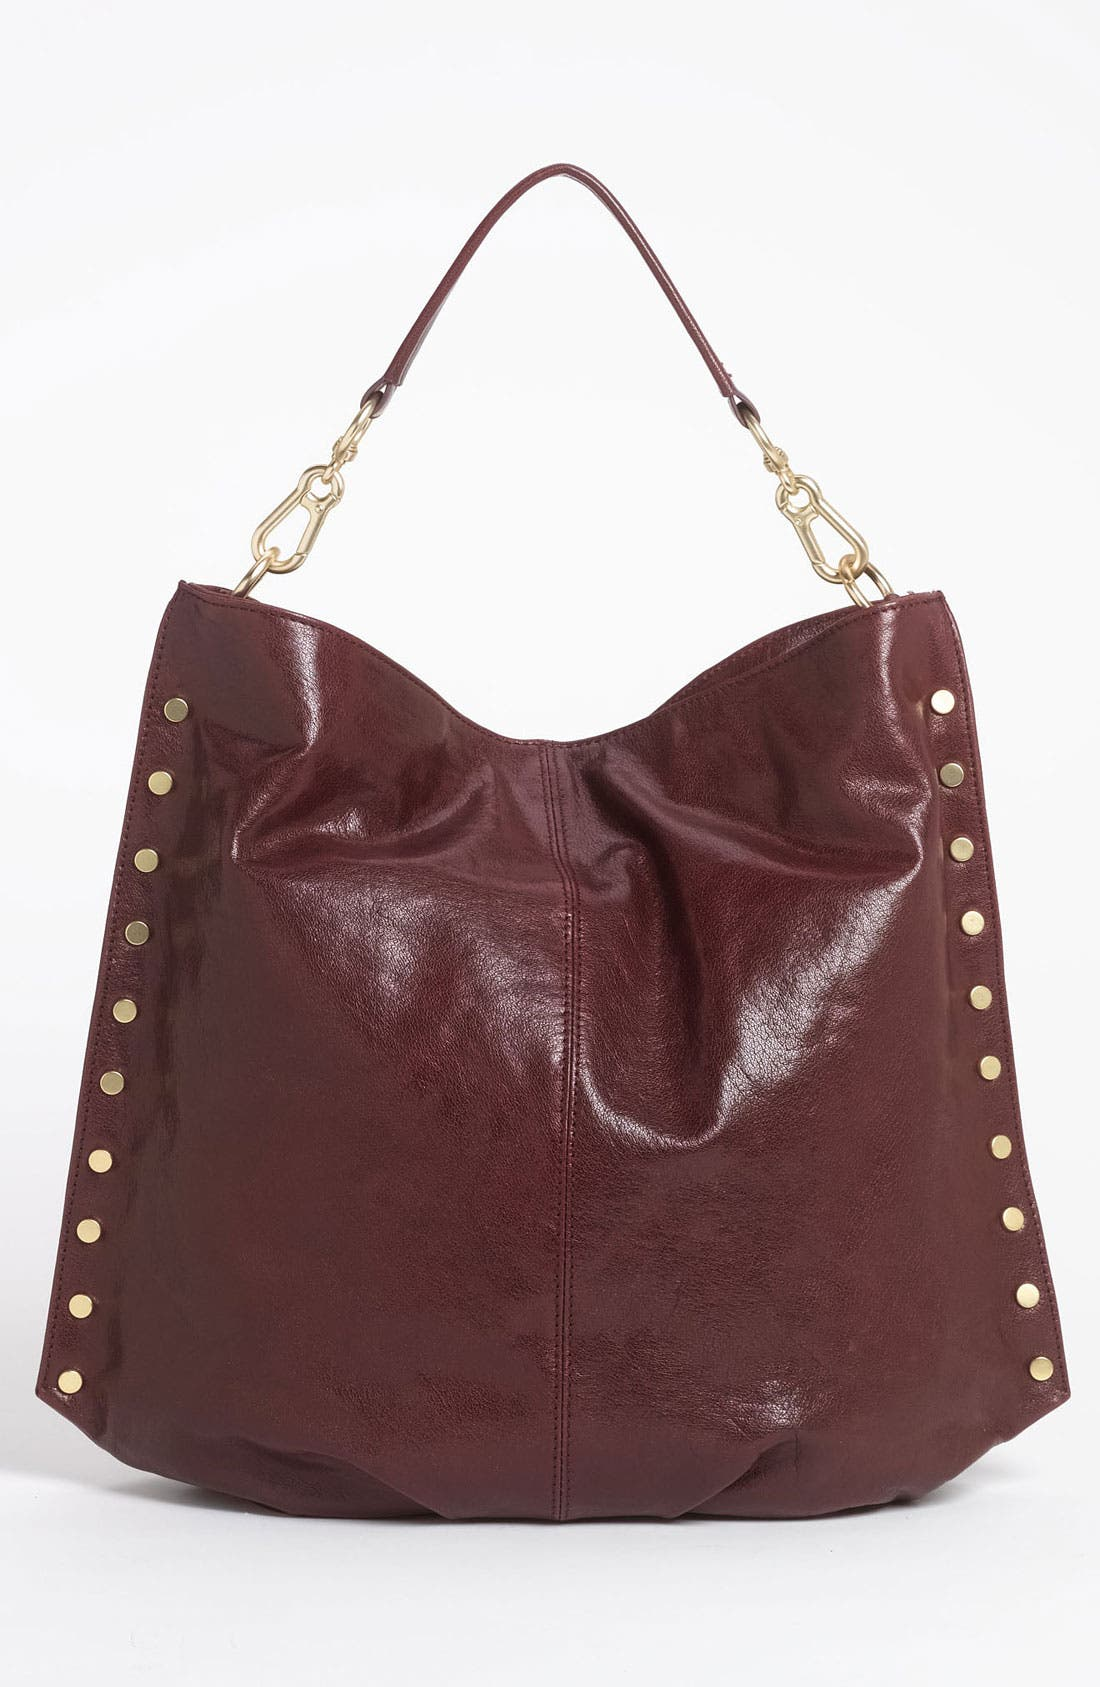 Main Image - Sloane & Alex 'Angie' Leather Hobo